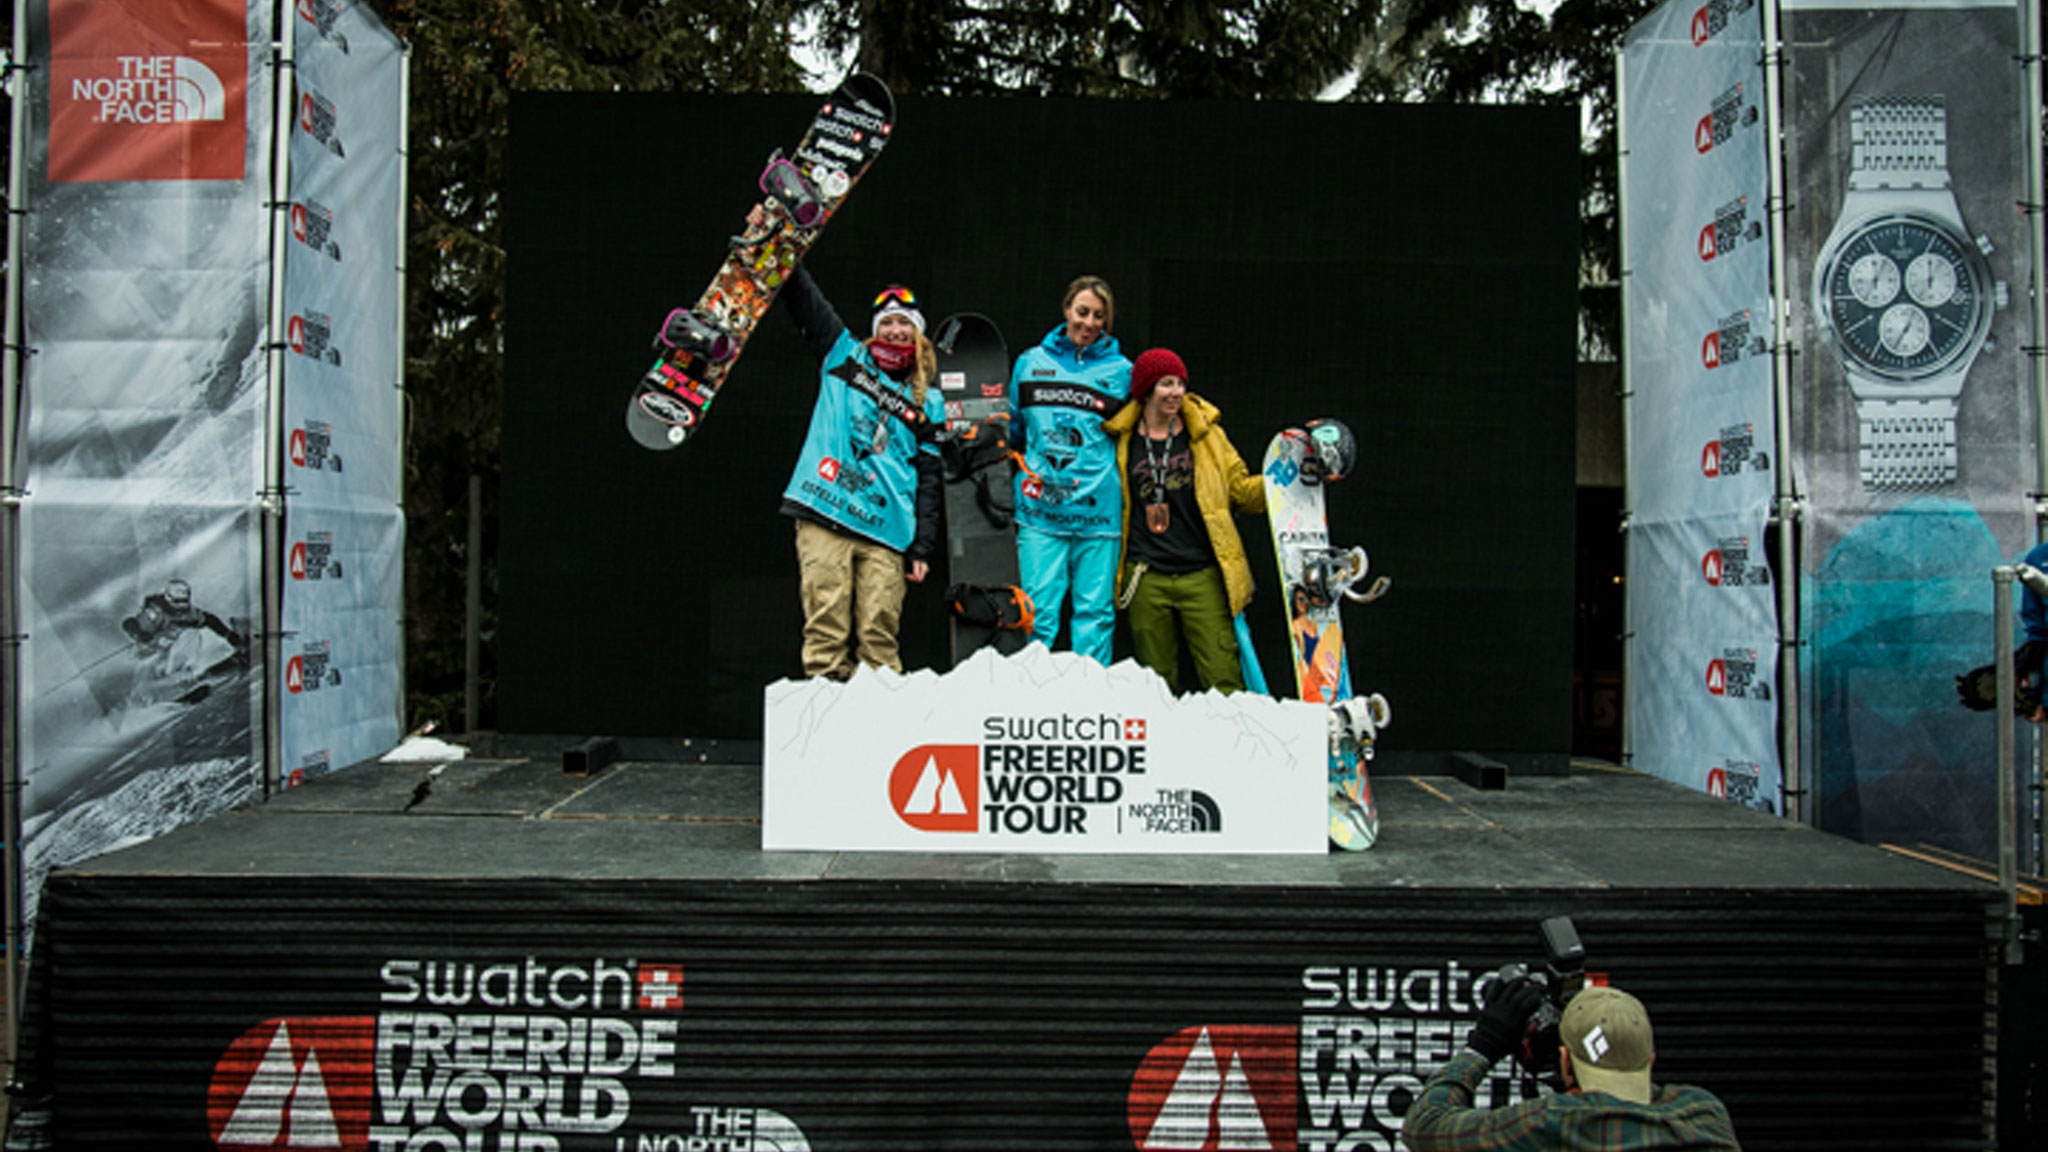 Women's Snowboard Podium